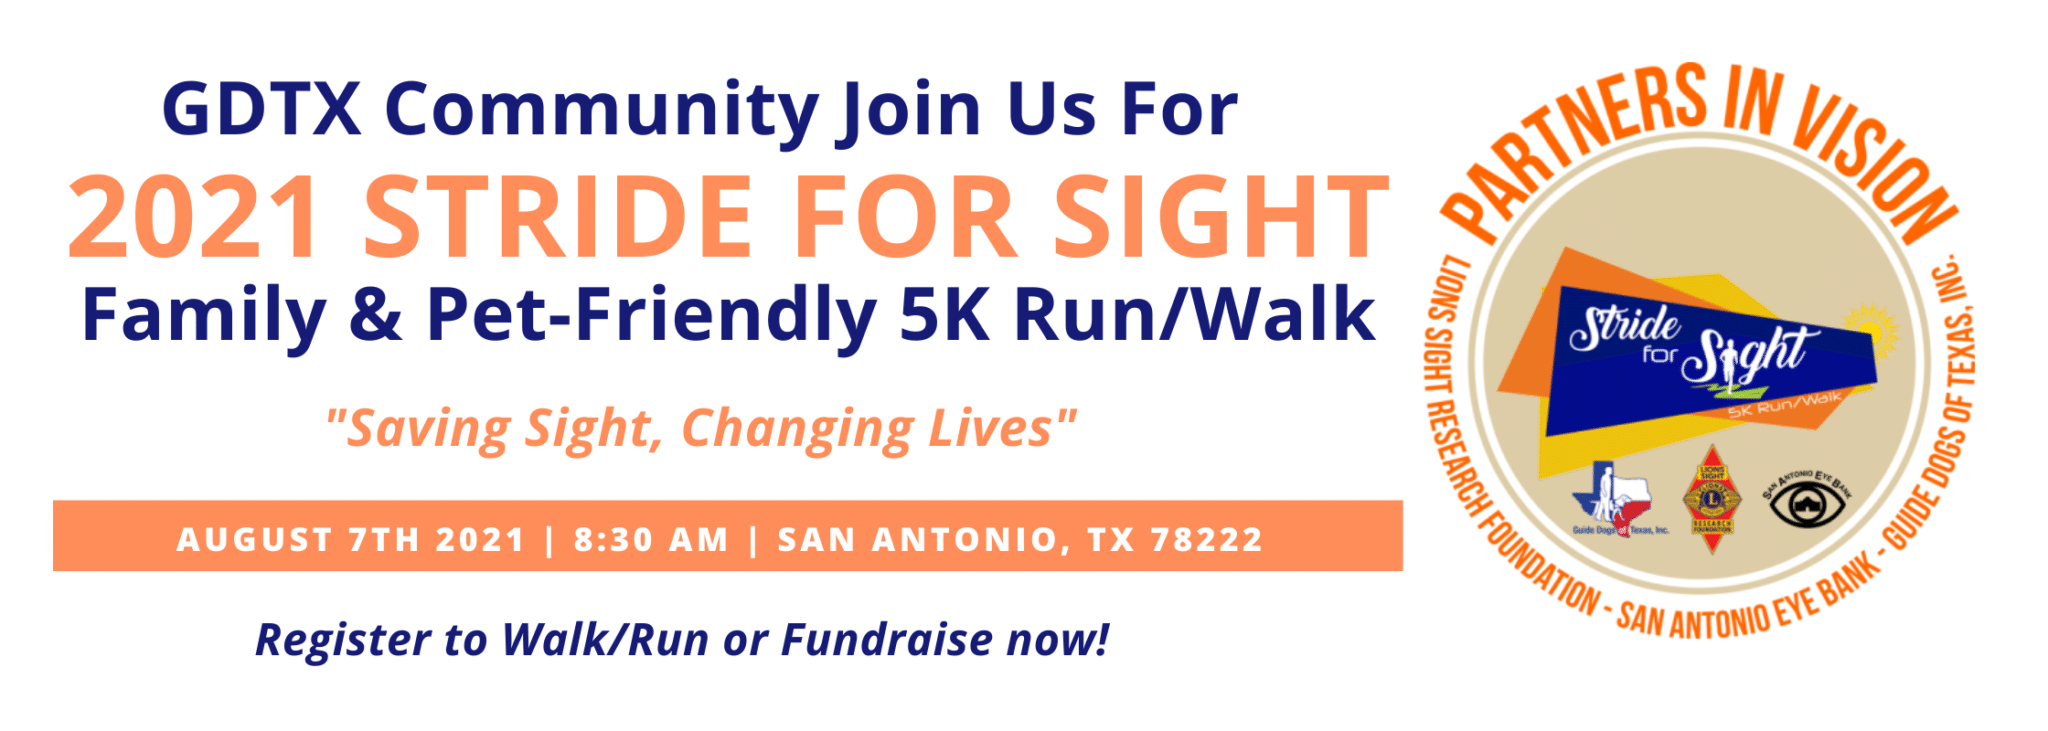 Join US ON AUGUST 7th 2021 830 AM San Antonio, TX 78222